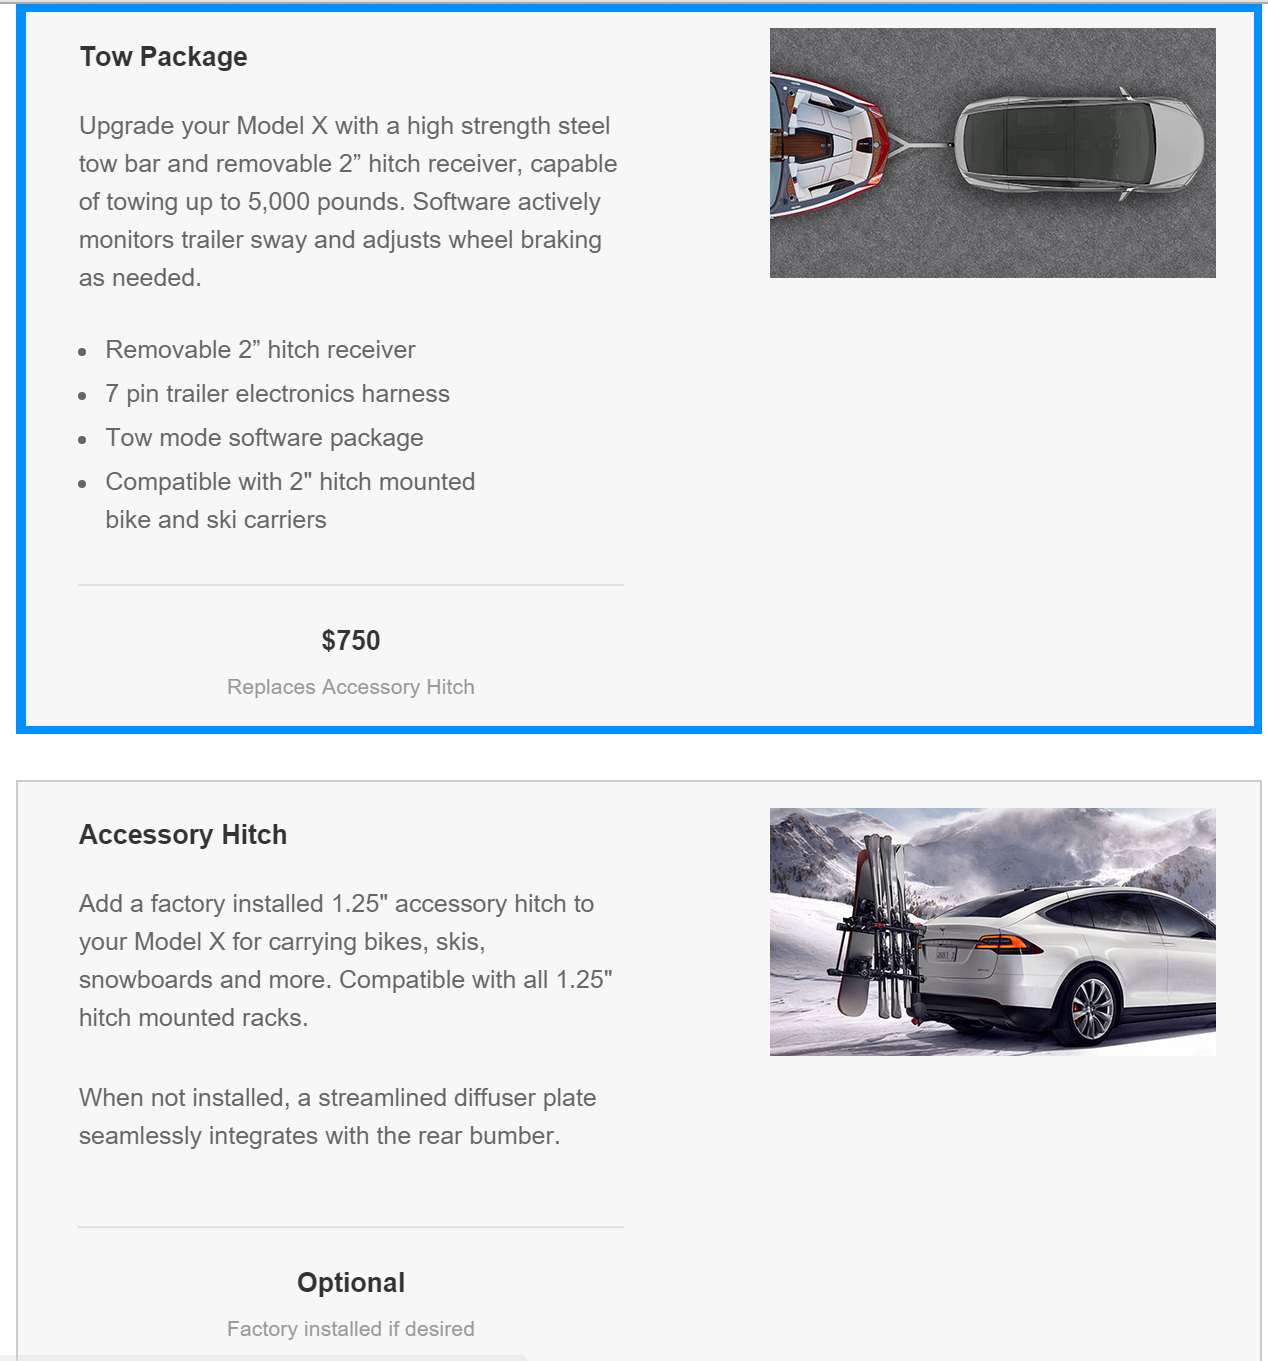 Model X tow packages